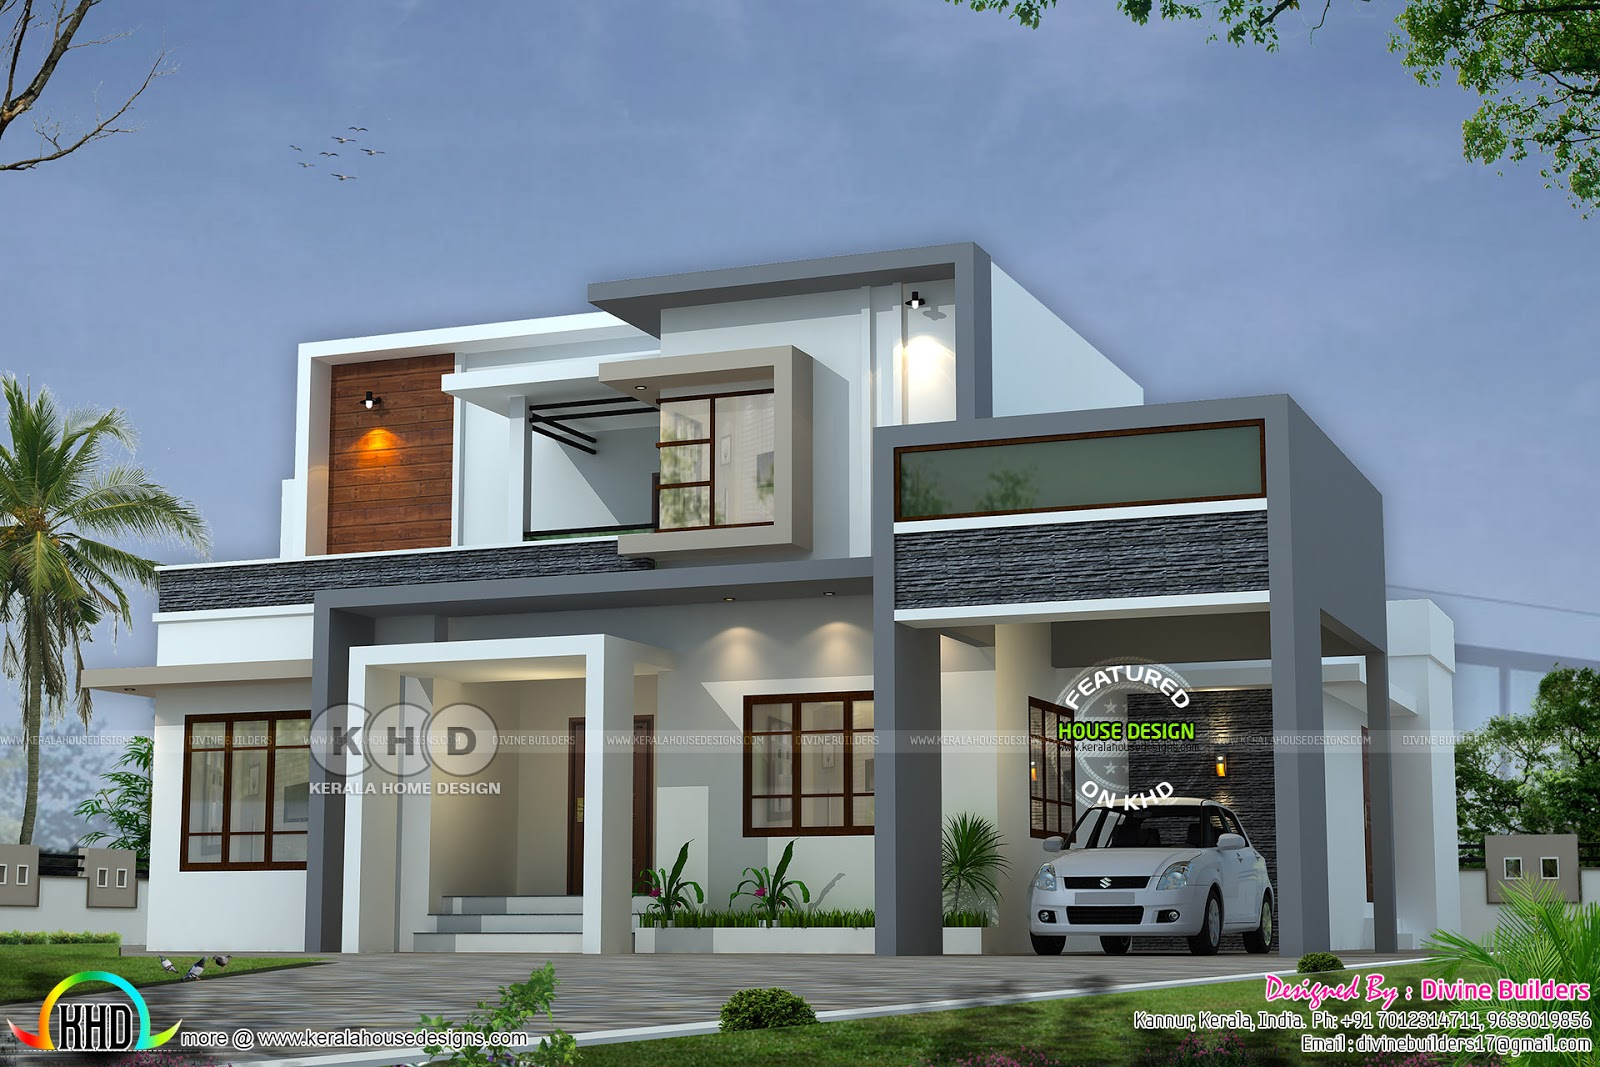 2017 kerala home design and floor plans for Architect home plans